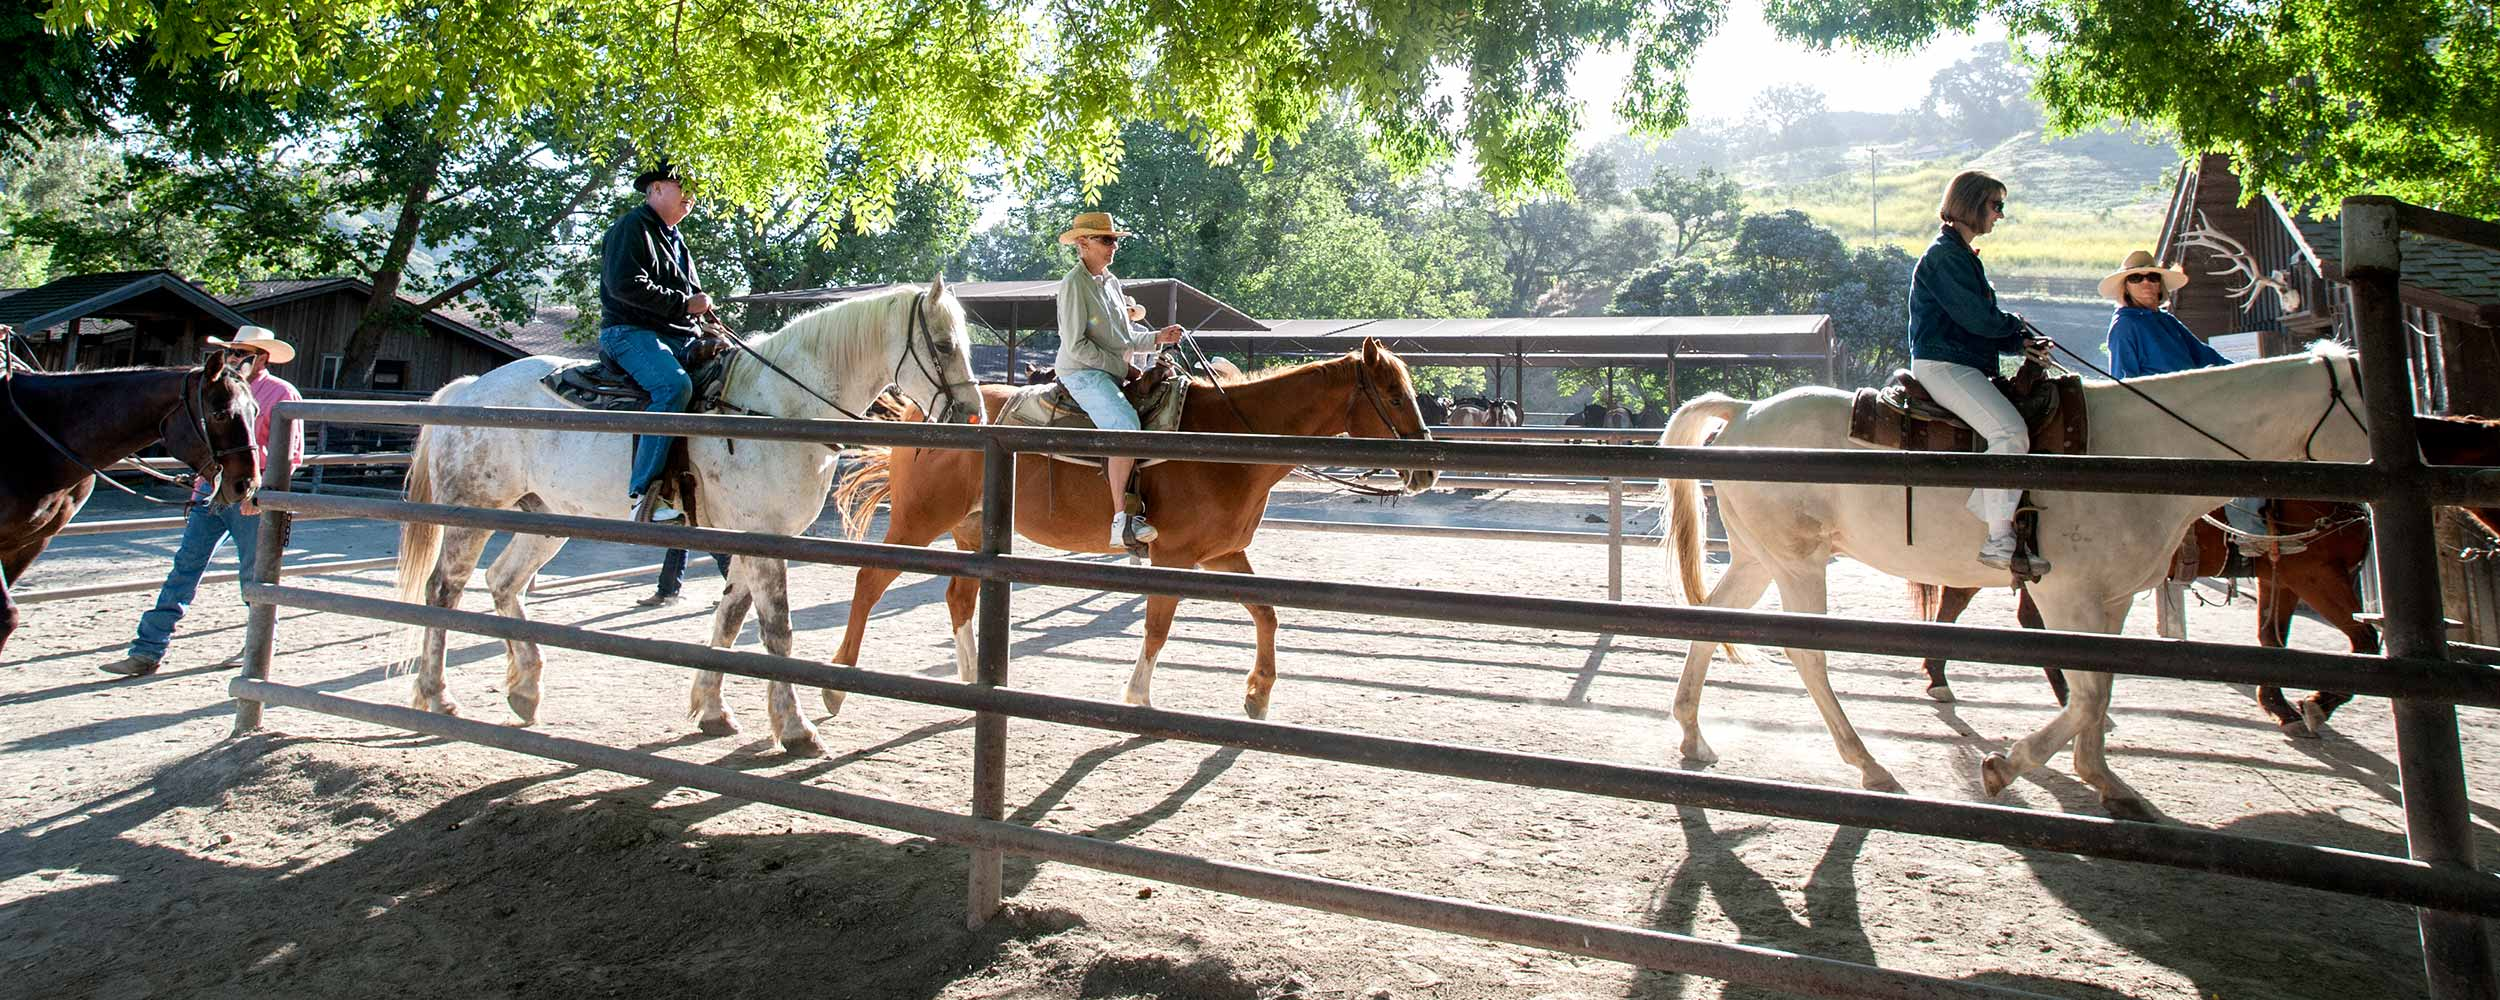 horseback riding at Alisal Ranch - Alisal Resort in Solvang California